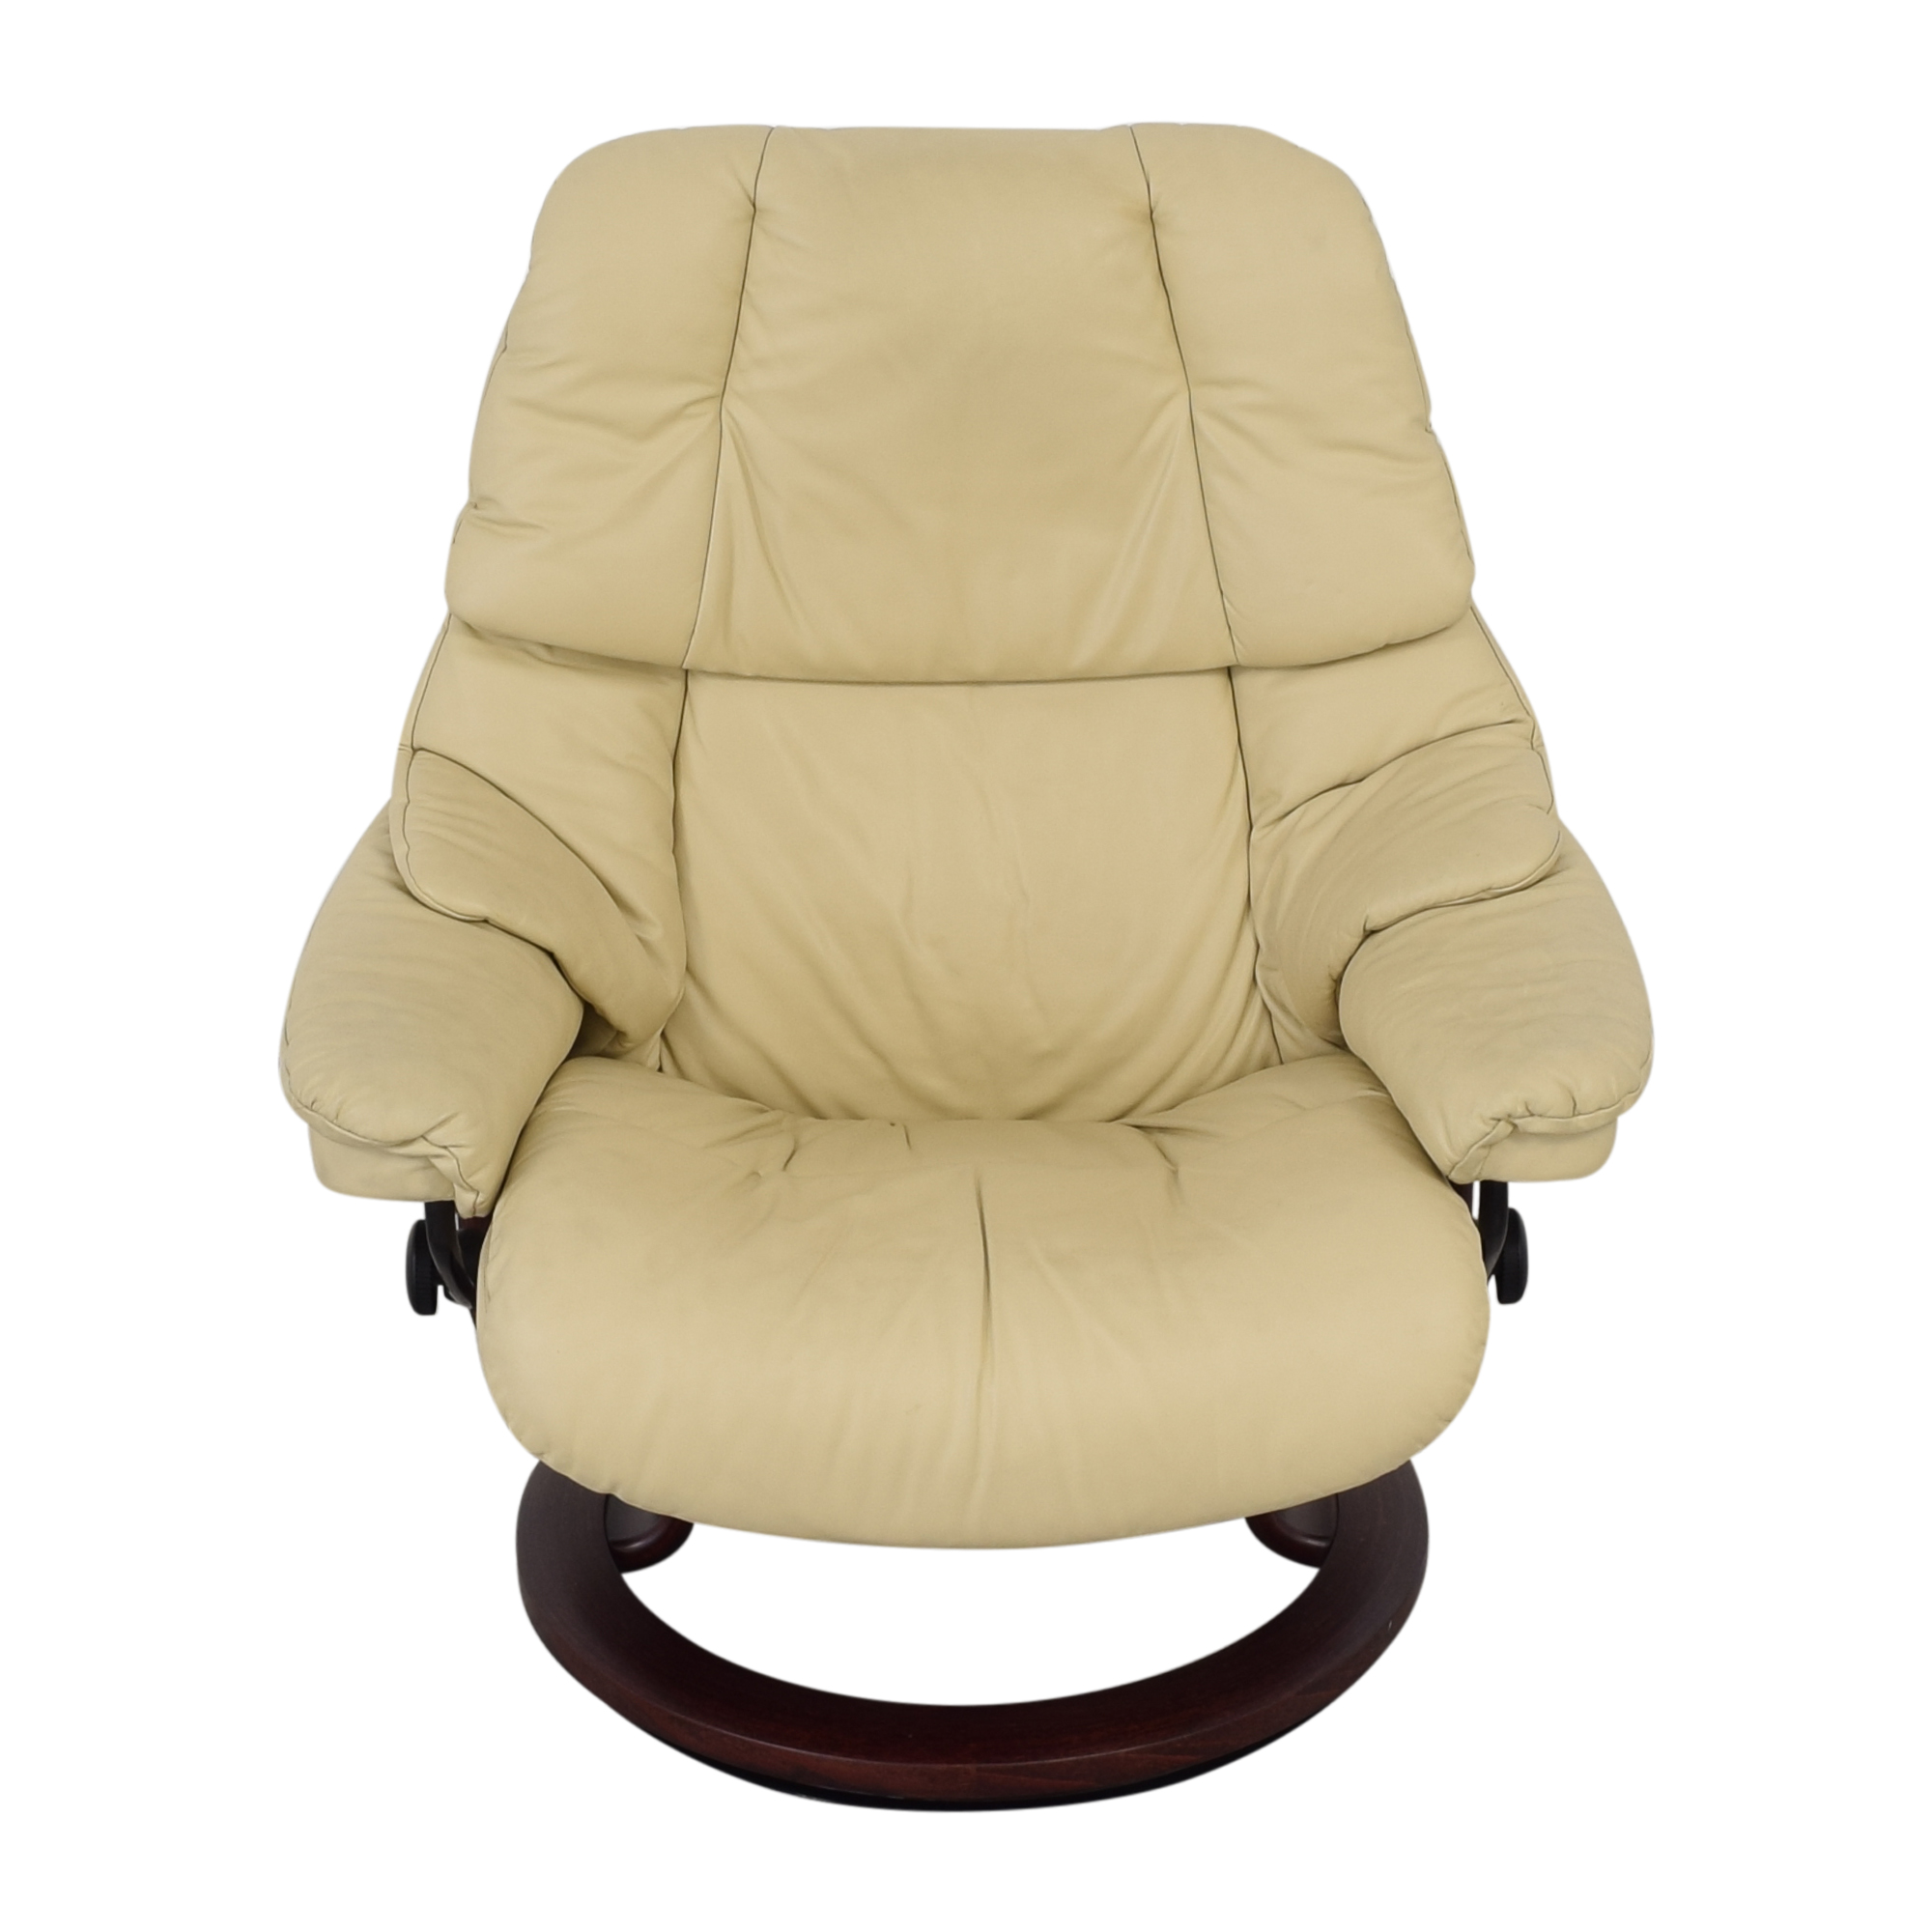 Ekornes Large Recliner and Footrest / Chairs